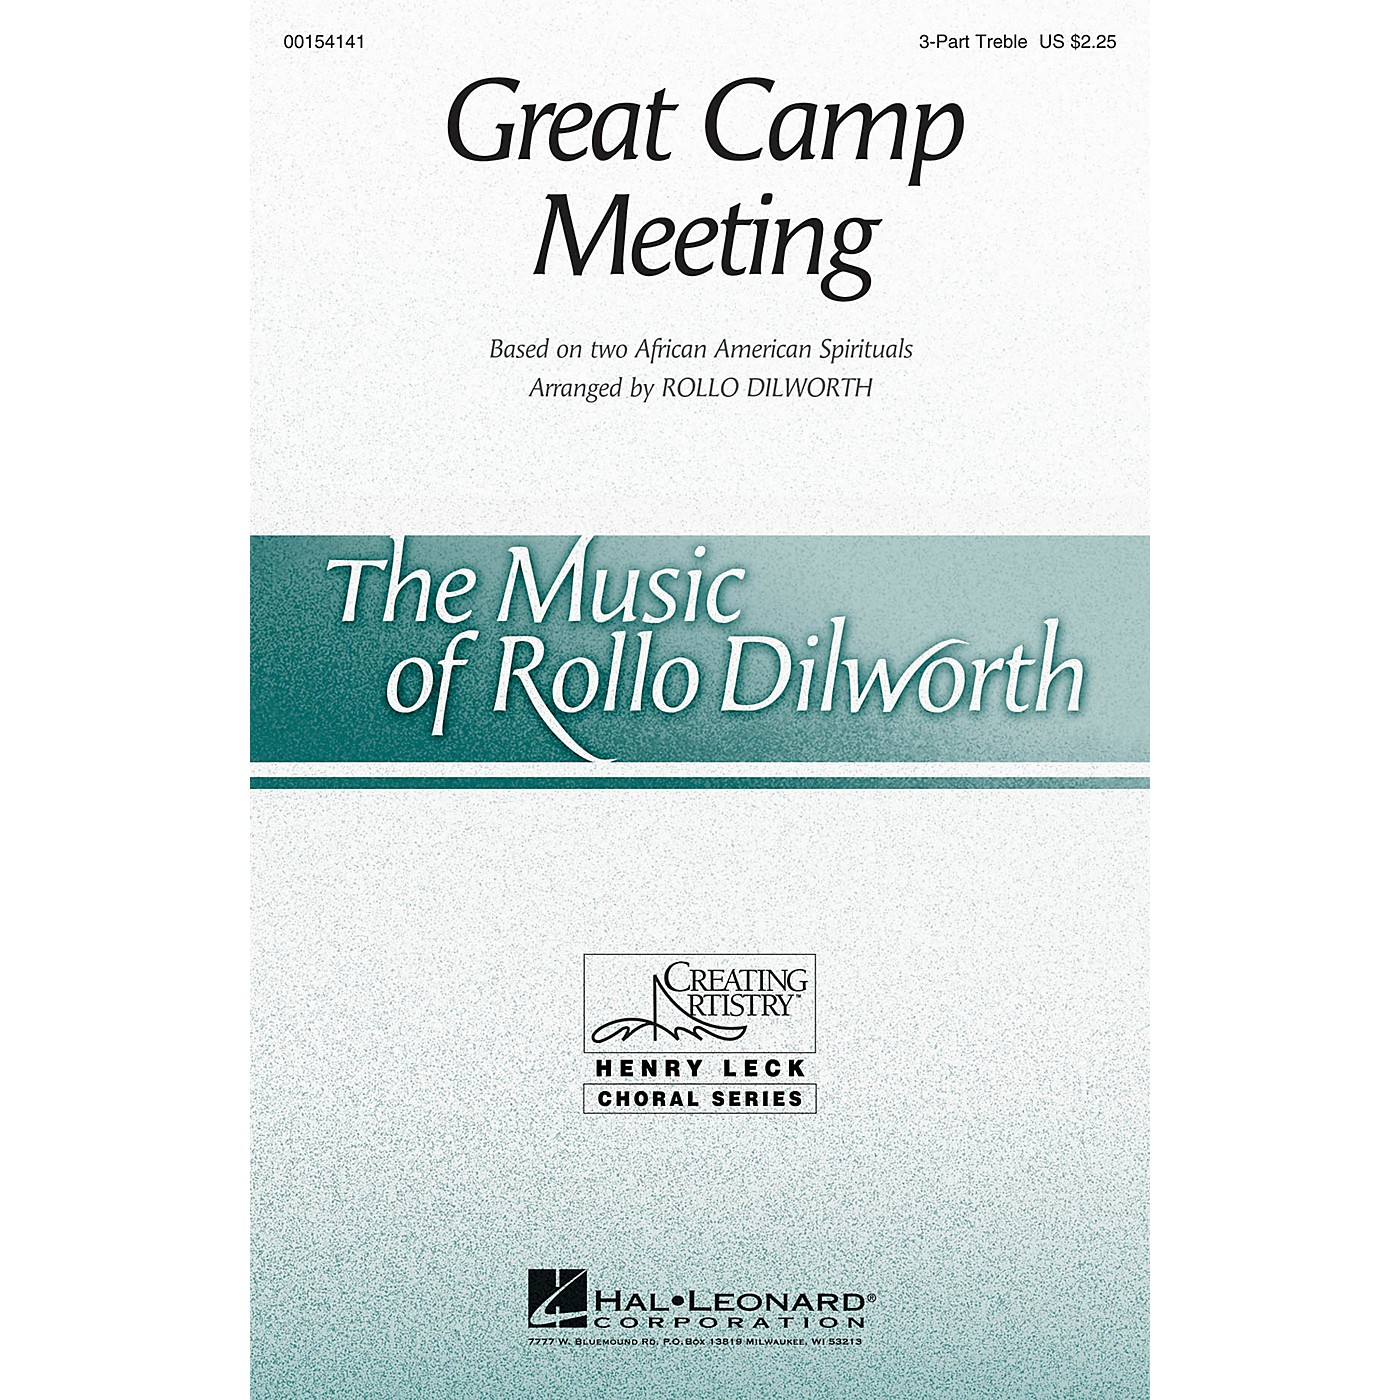 Hal Leonard Great Camp Meeting 3 Part Treble arranged by Rollo Dilworth thumbnail